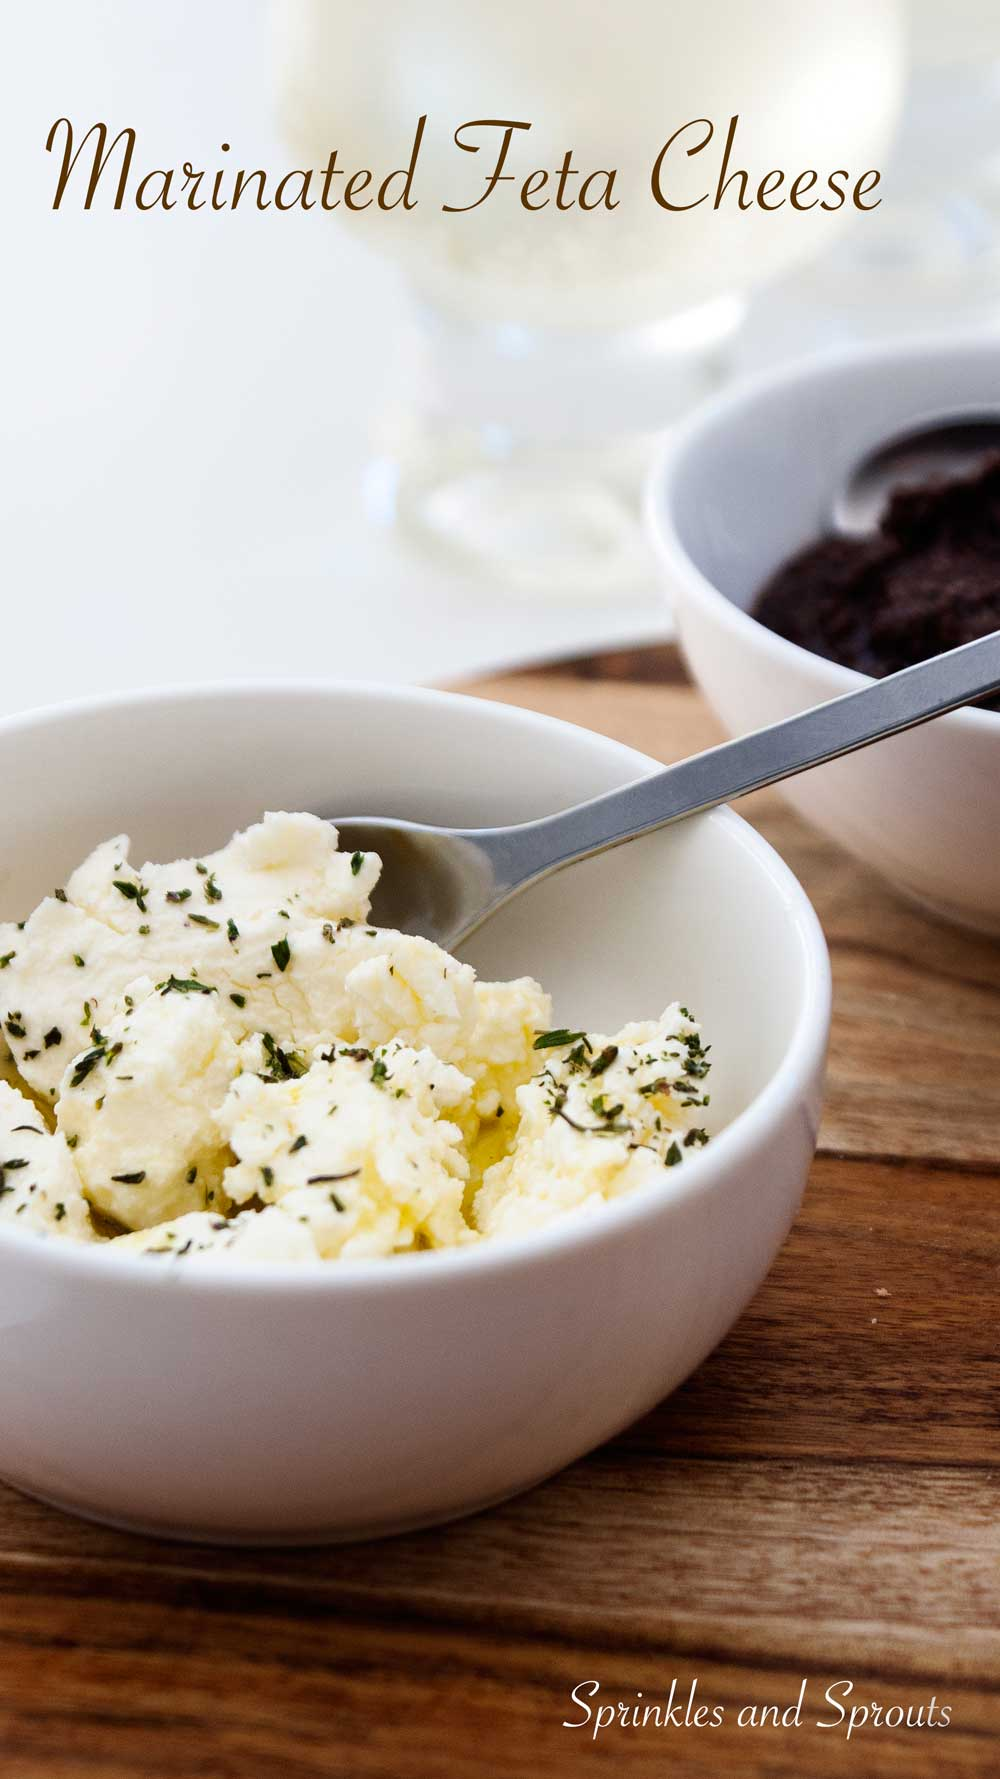 Marinated Feta Cheese - A creamy, flavourful way to enjoy this wonderful cheese.